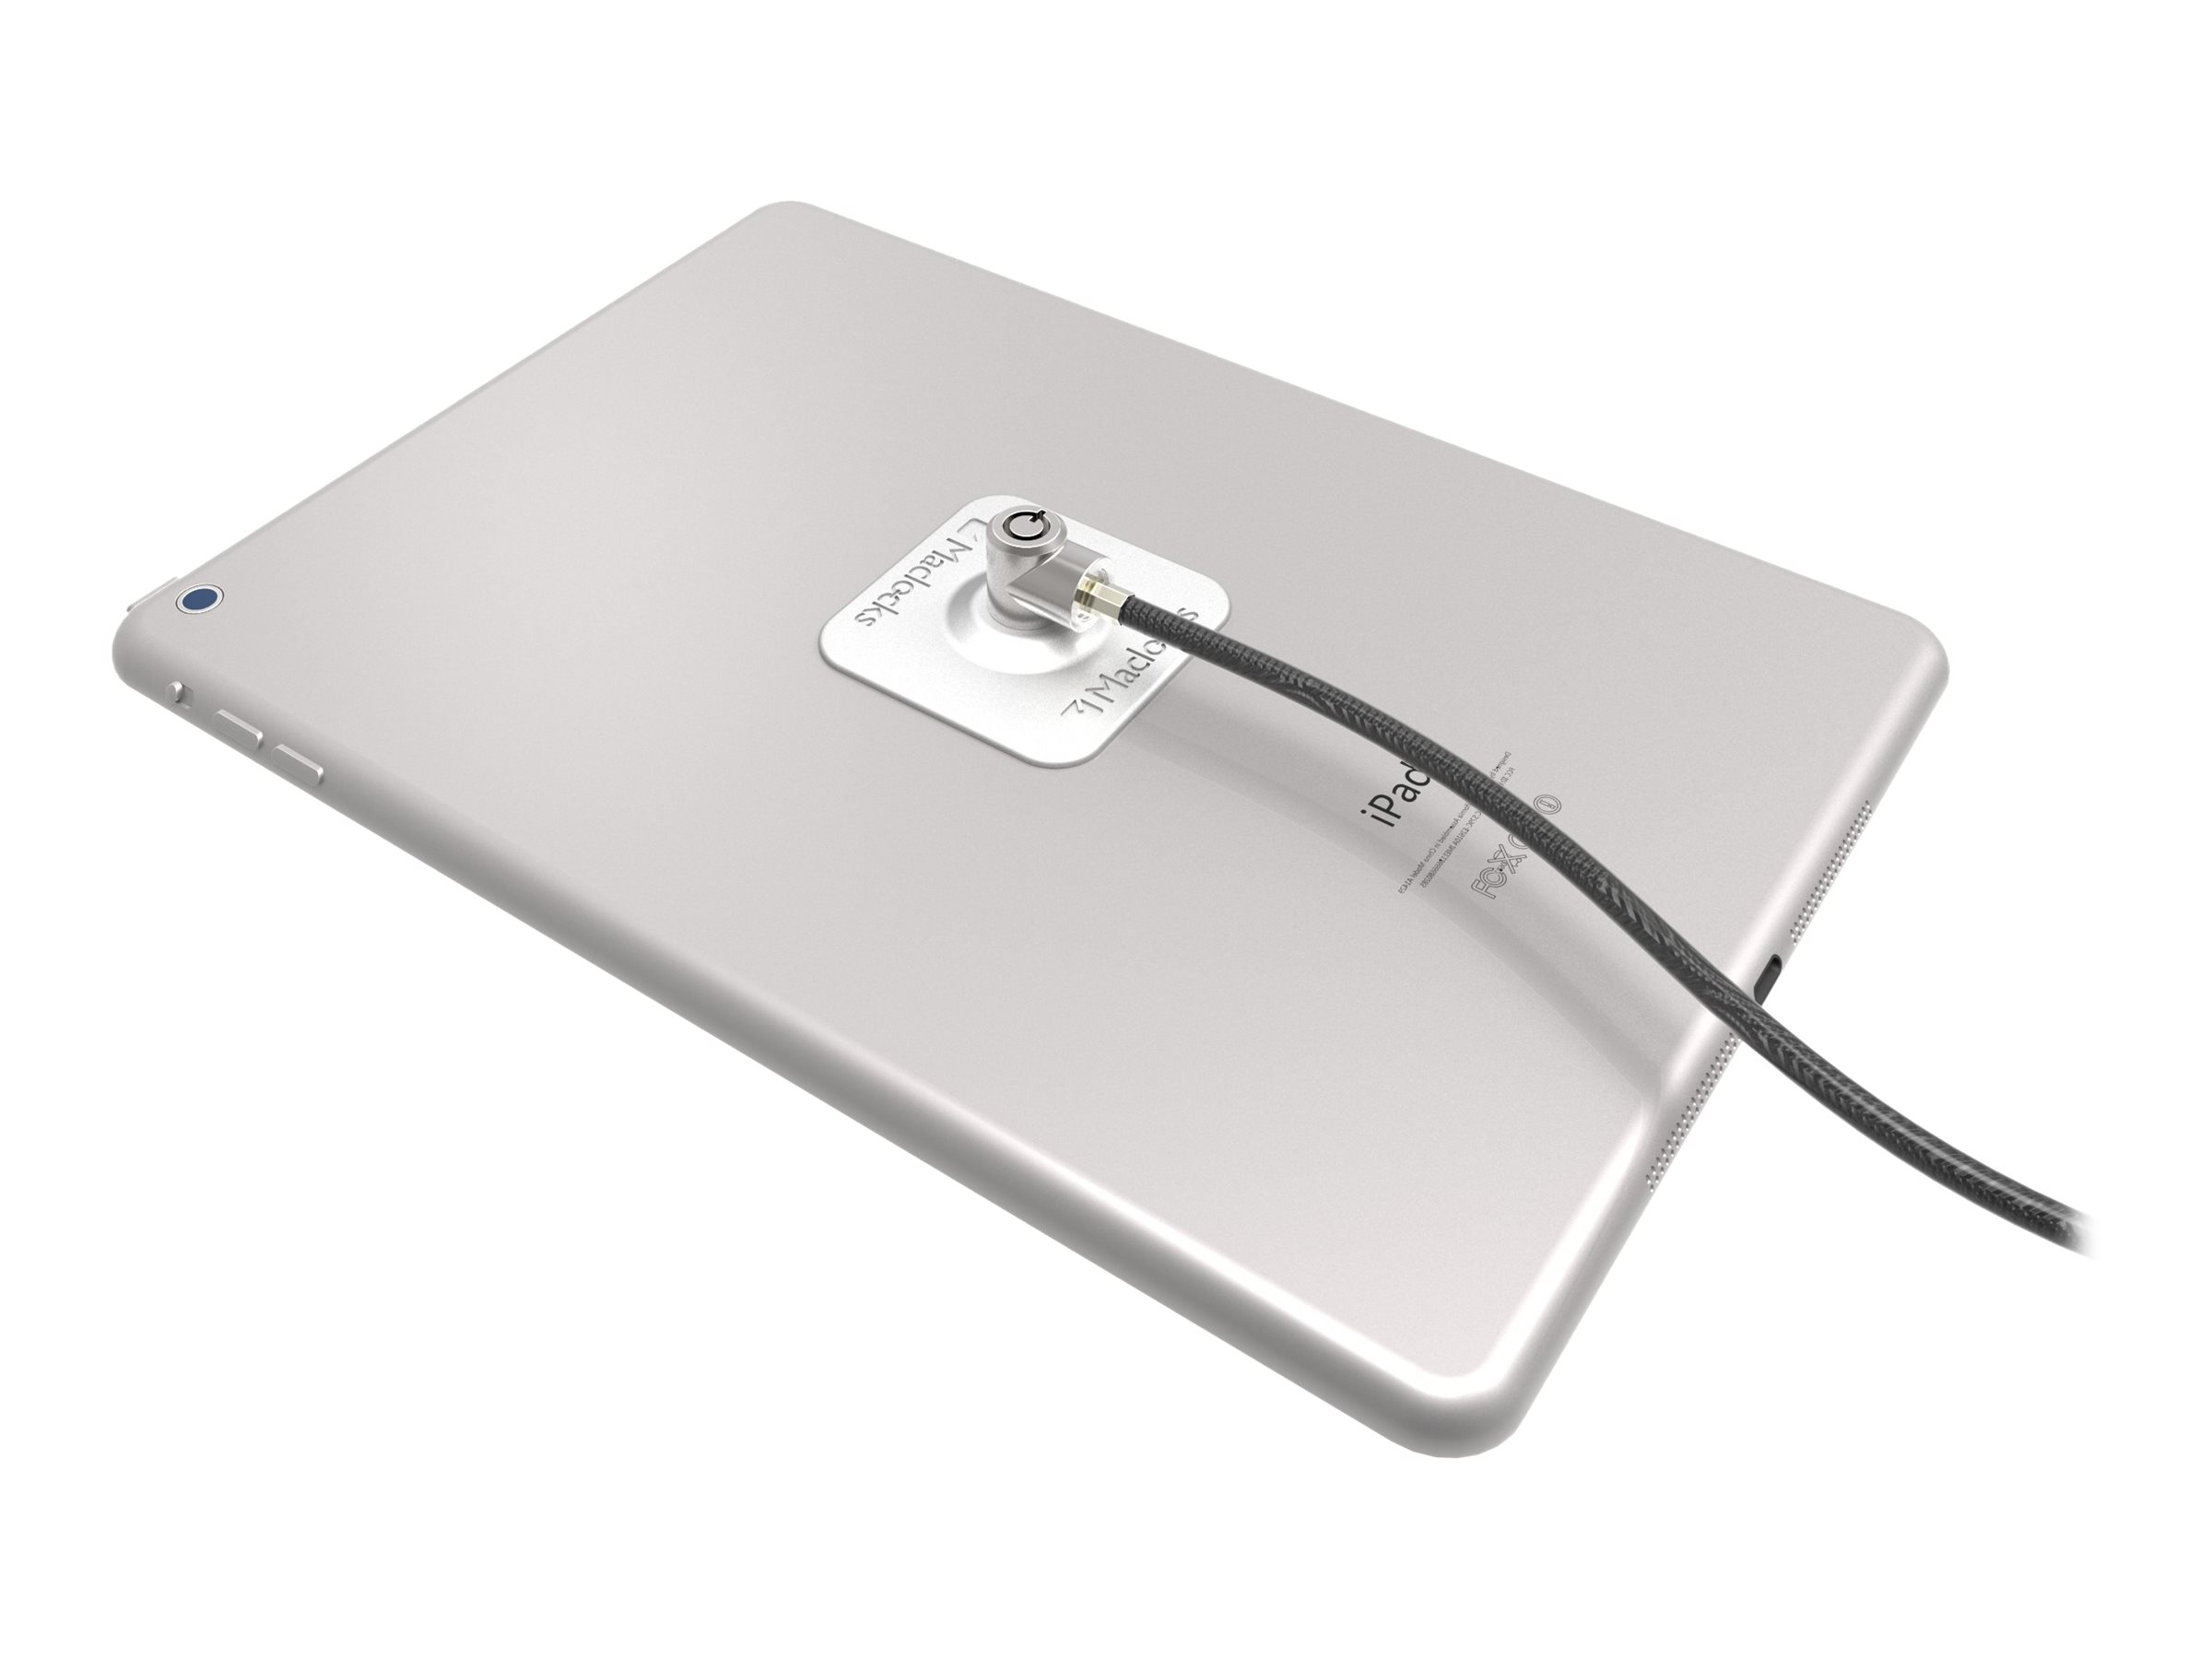 Compulocks Universal Tablet Cable Lock - 3M Plate - Silver Keyed Lock - Sicherheitskit